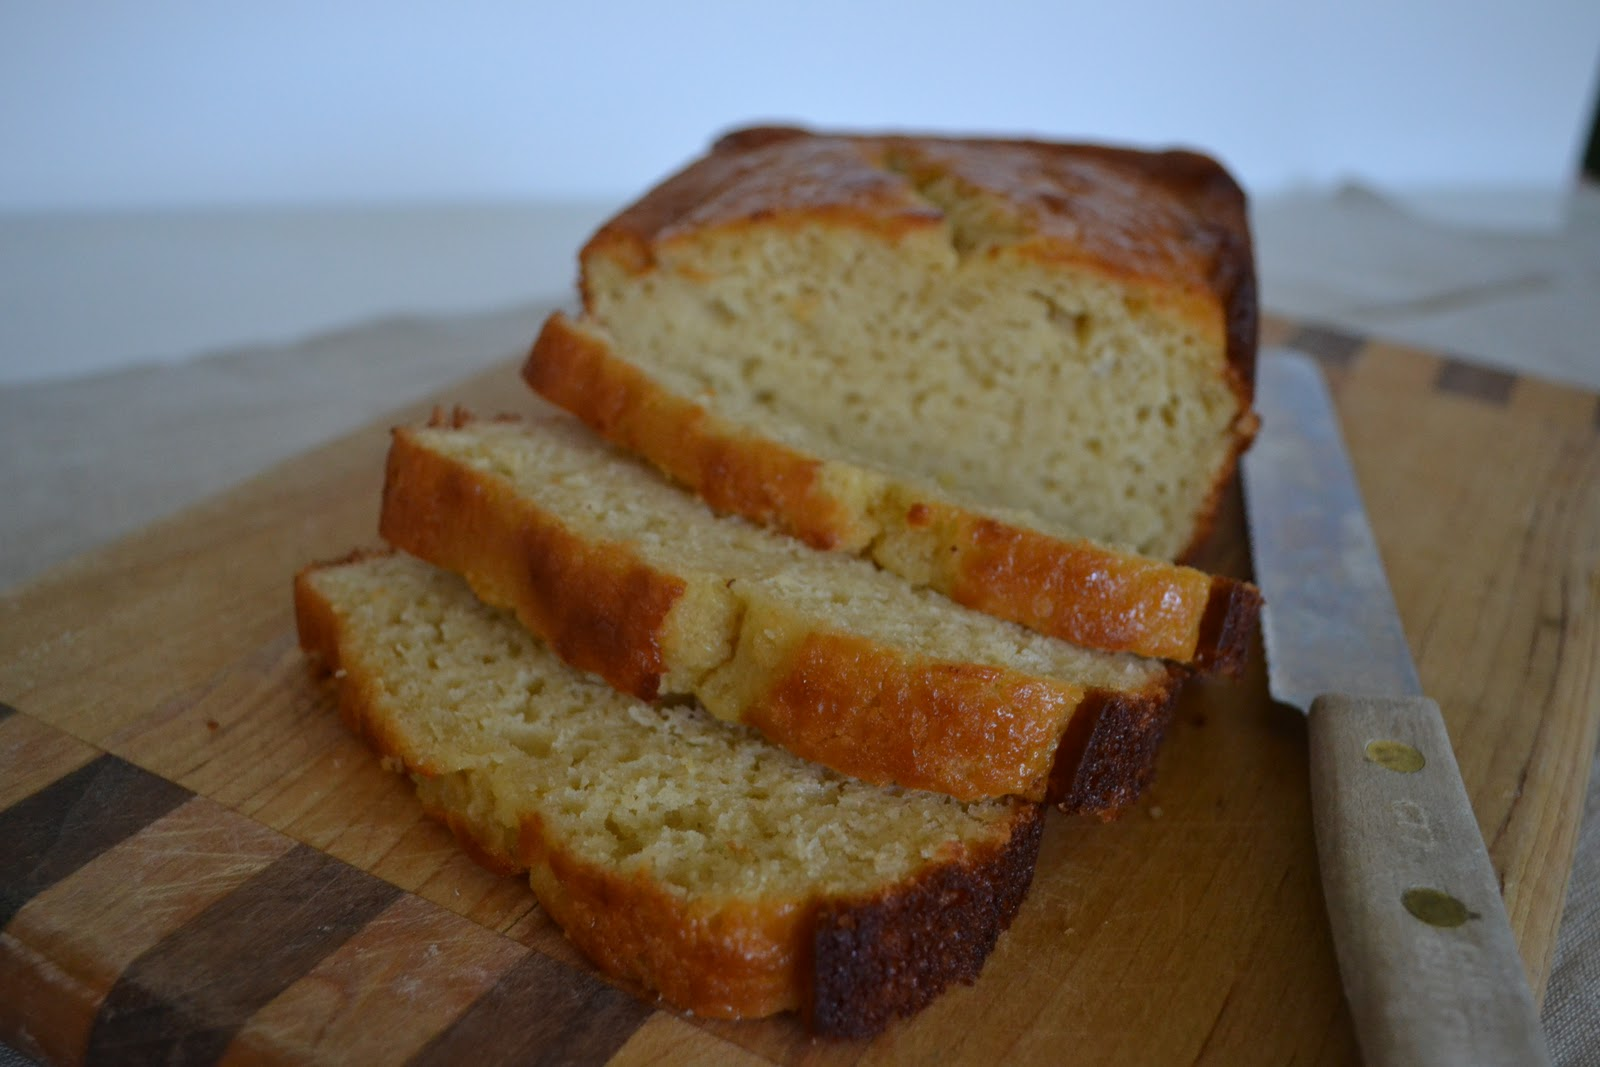 Lorraine Pascale Lemon Yogurt Pound Cake